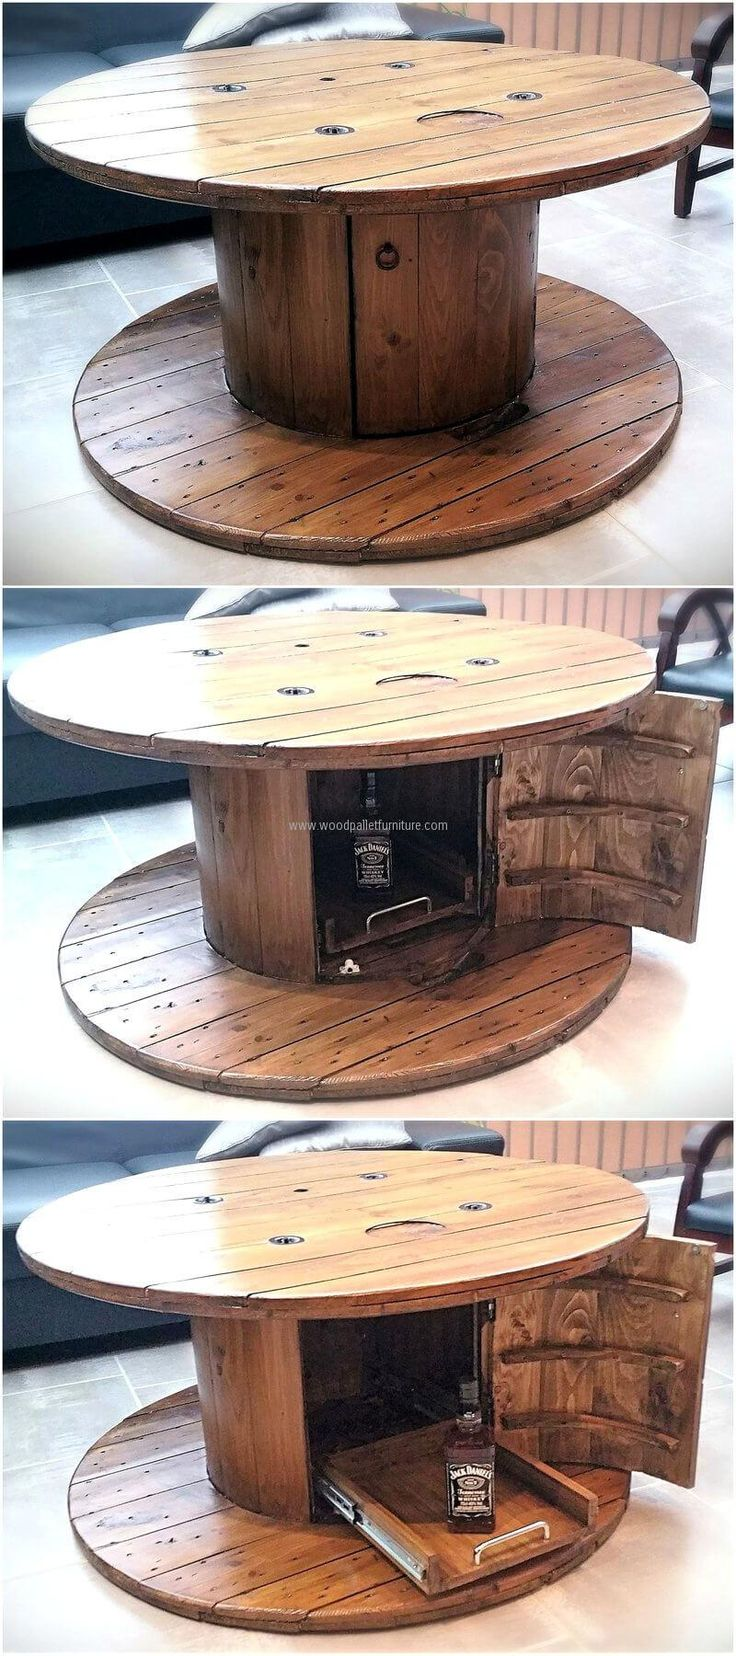 How to make a sofa table from cable wood reel - 25 Best Ideas About Cable Spool Tables On Pinterest Cable Spool Ideas Diy Cable Spool Table And Cable Spools